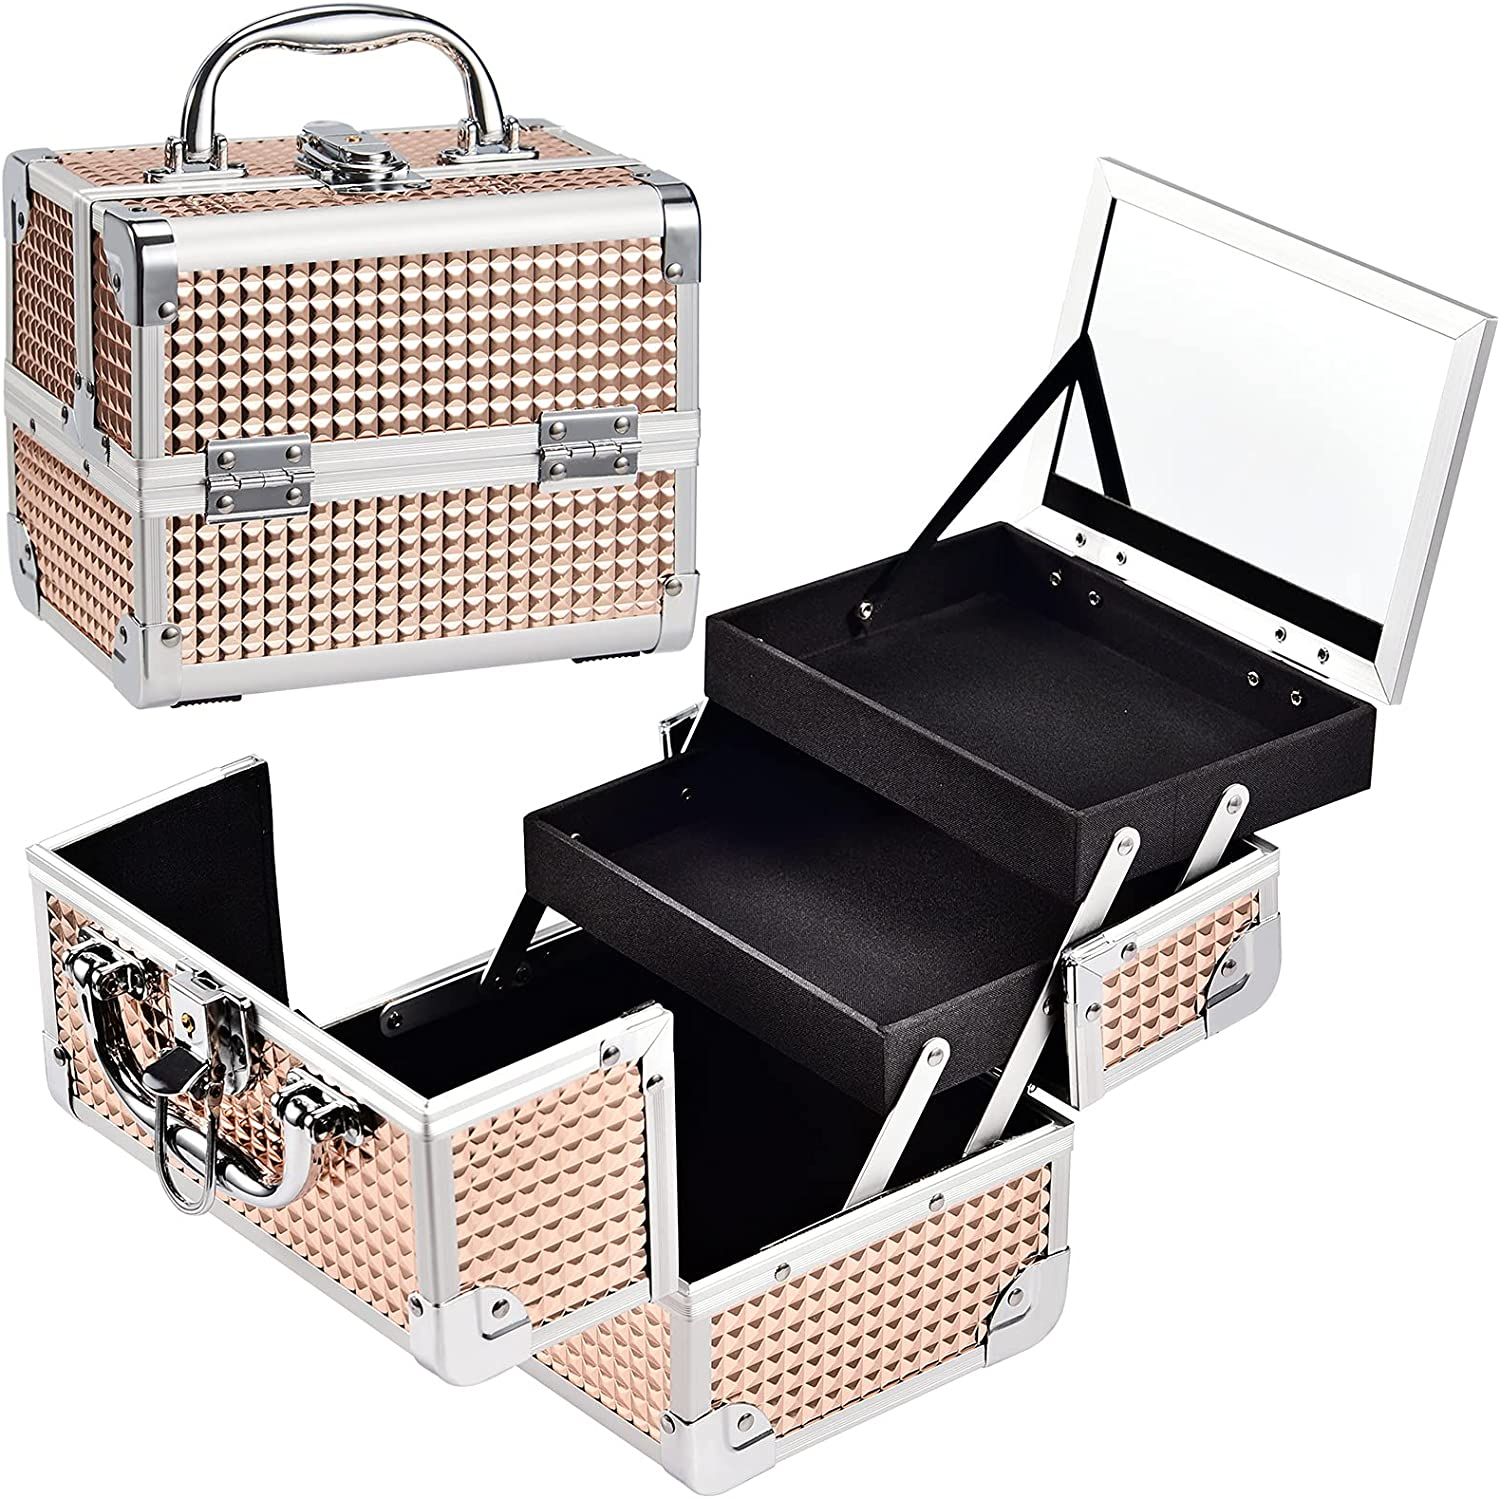 Costravio Makeup Train Case Max 85% OFF Portable Cosmetic 70% OFF Outlet Organizer Box with